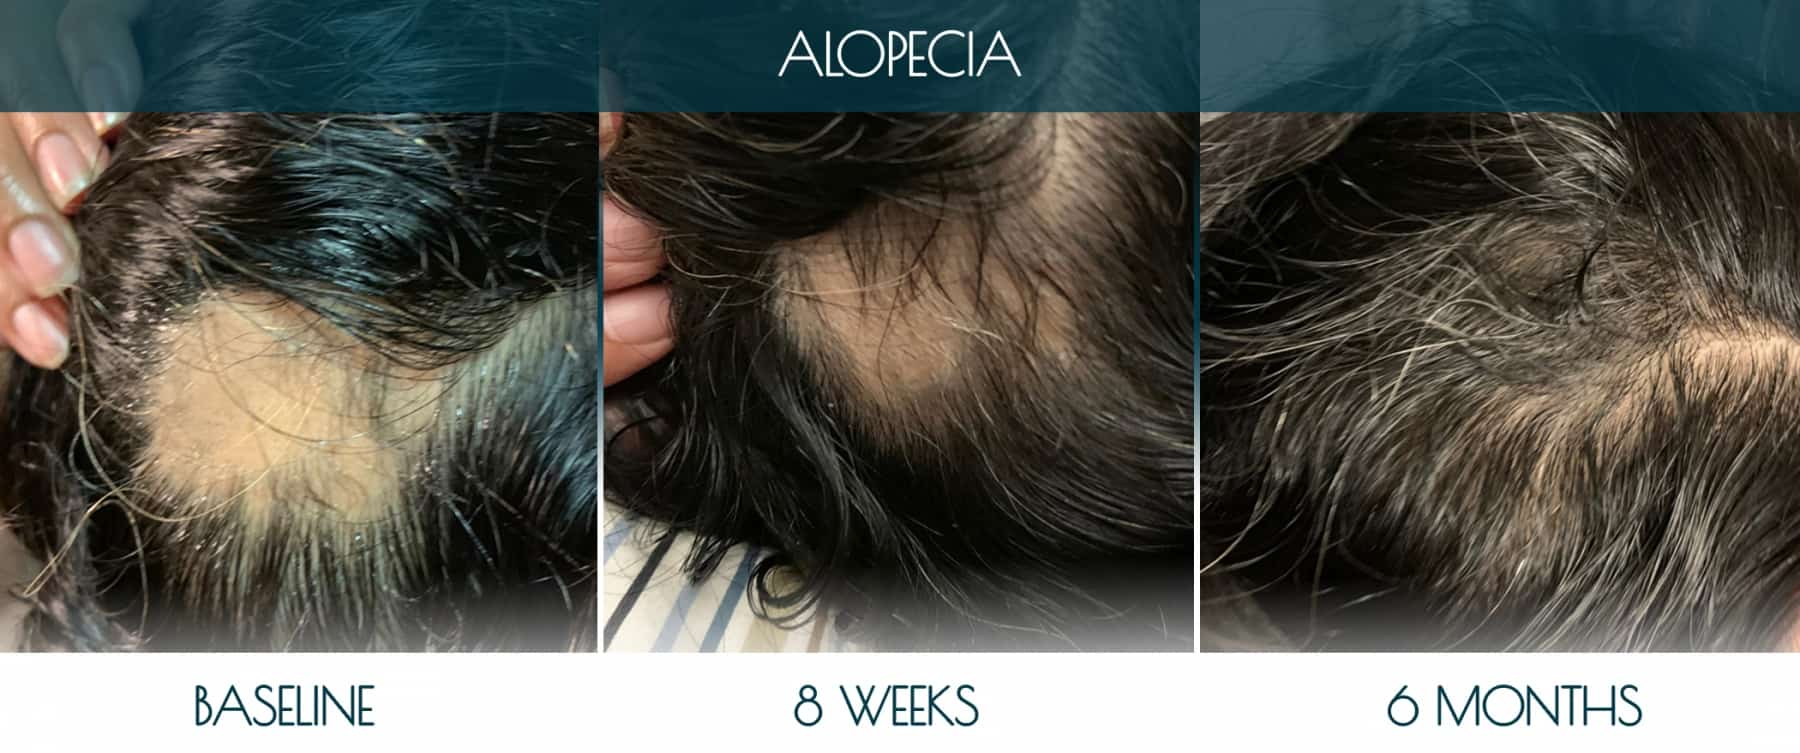 Befor-after_ALOPECIA-1